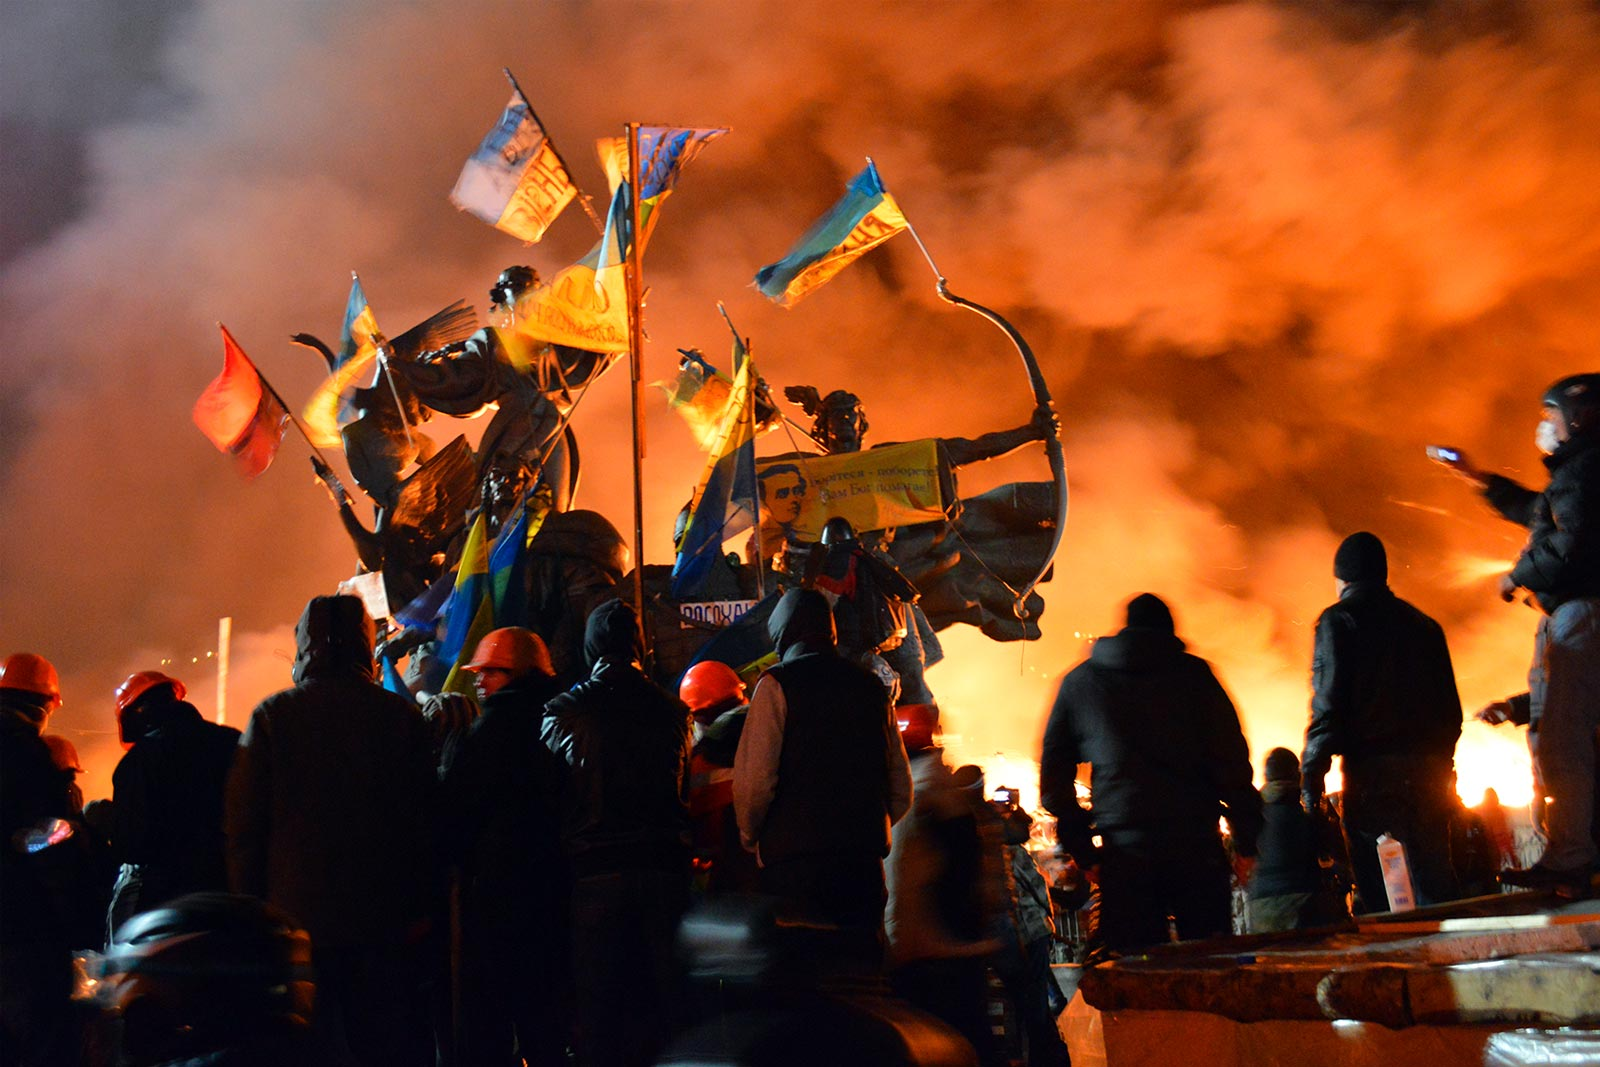 European Interests: Maidan